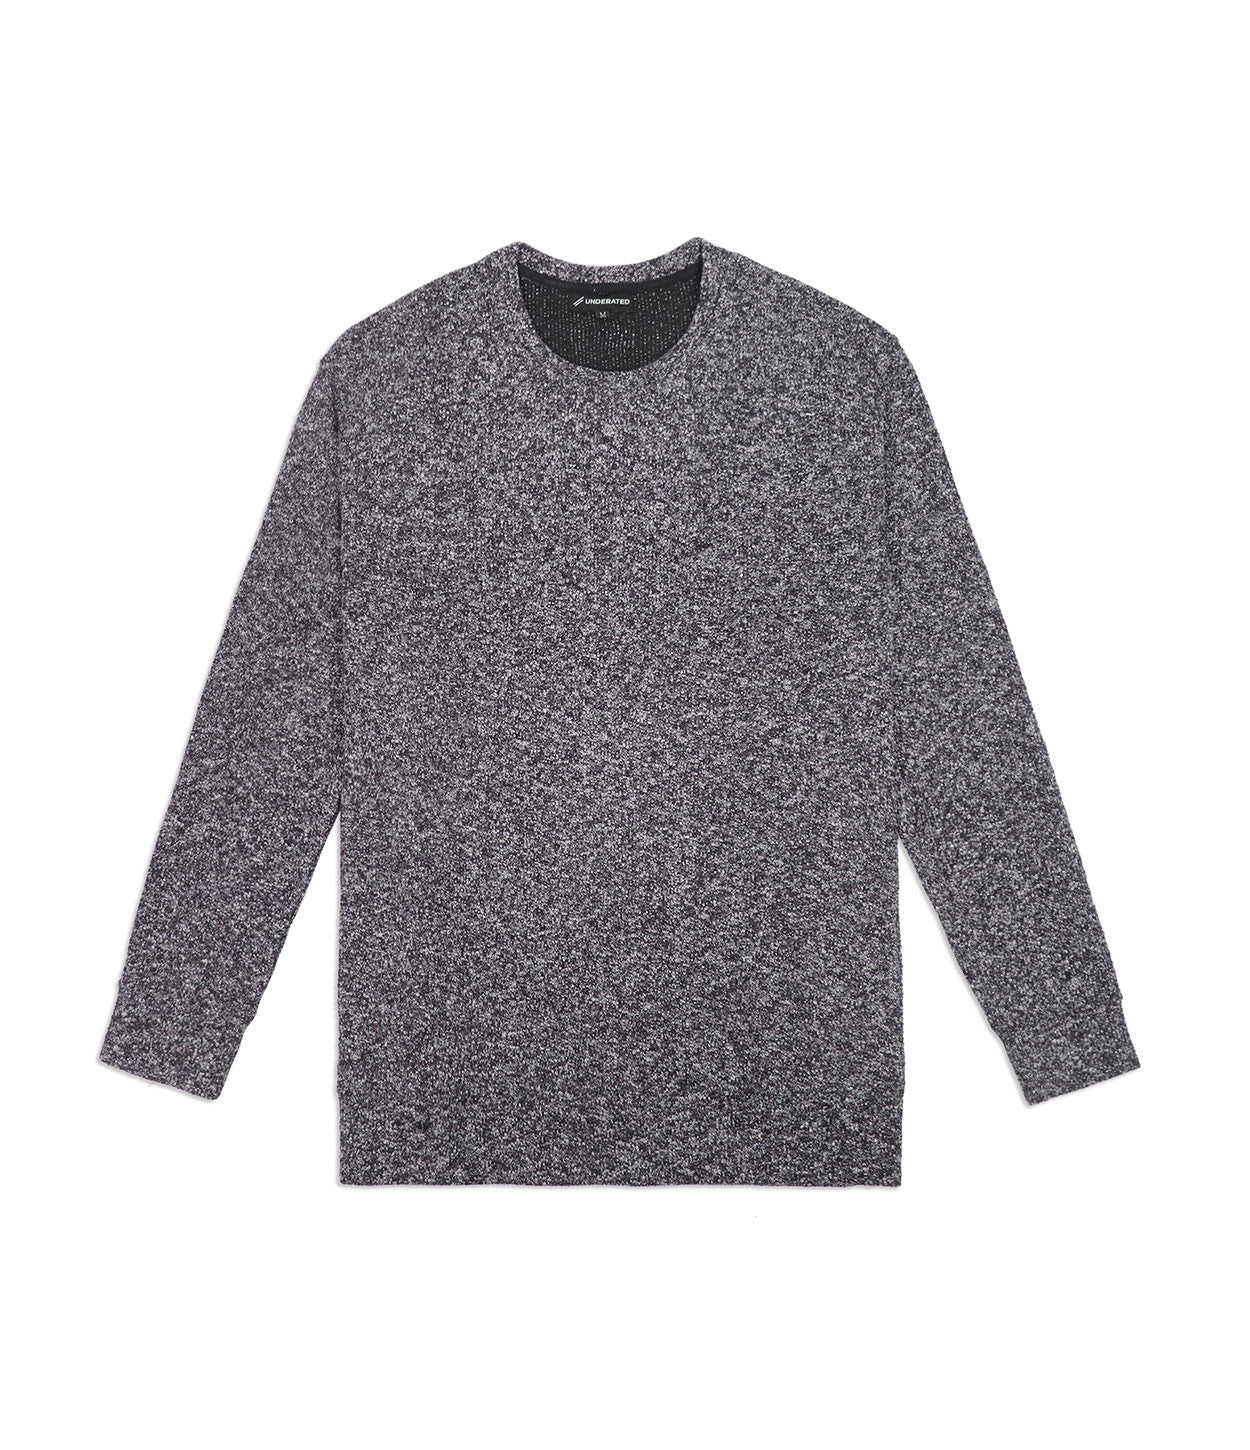 SW375 Elongated Knit Jumper - Black - underated london - underatedco - 1